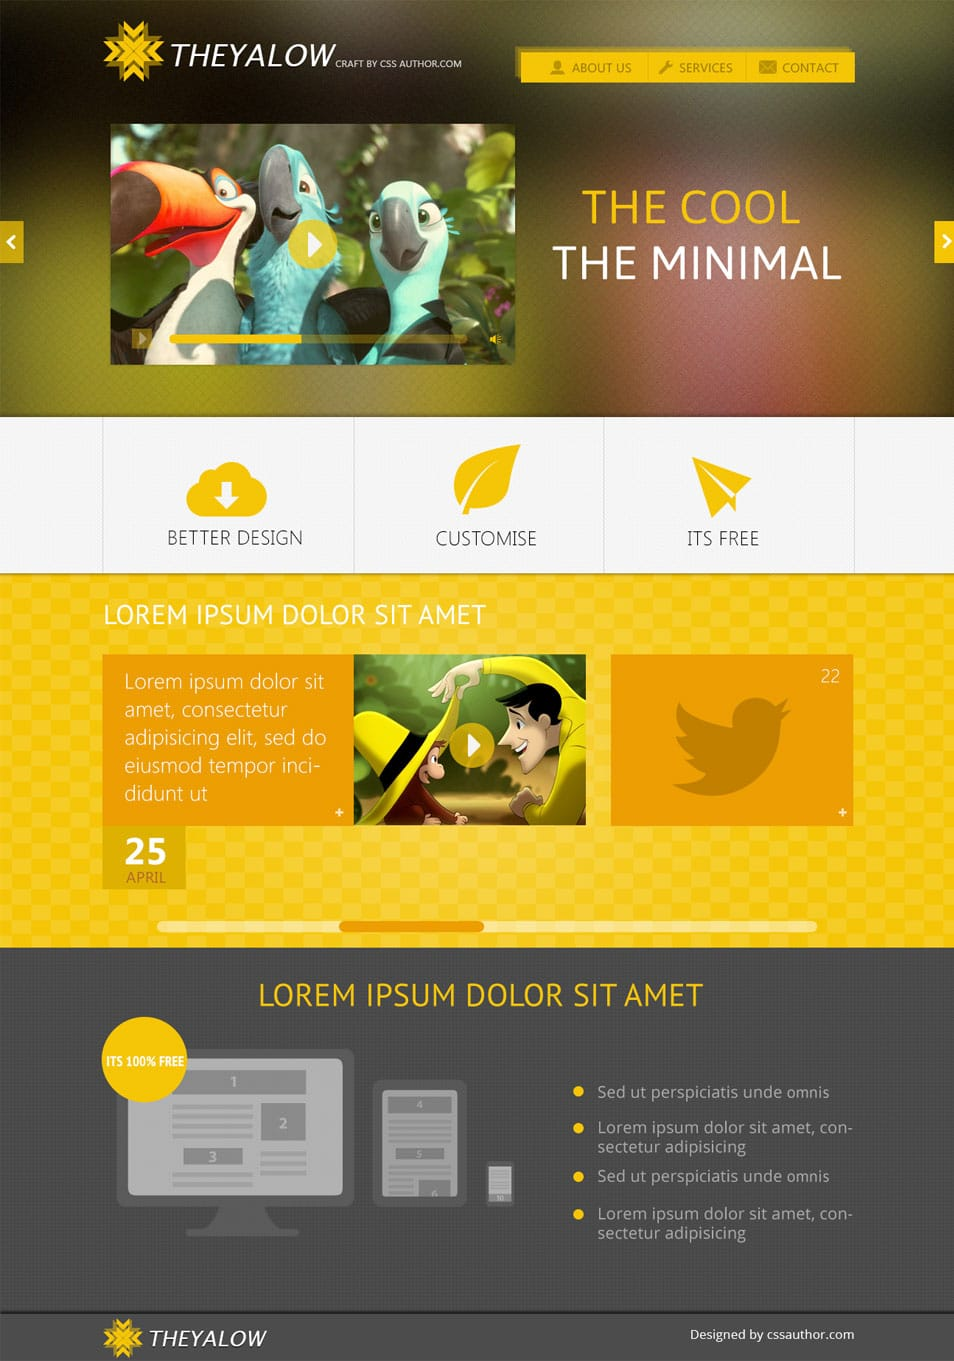 THEYALOW – A Responsive Web Design Template PSD - cssauthor.com